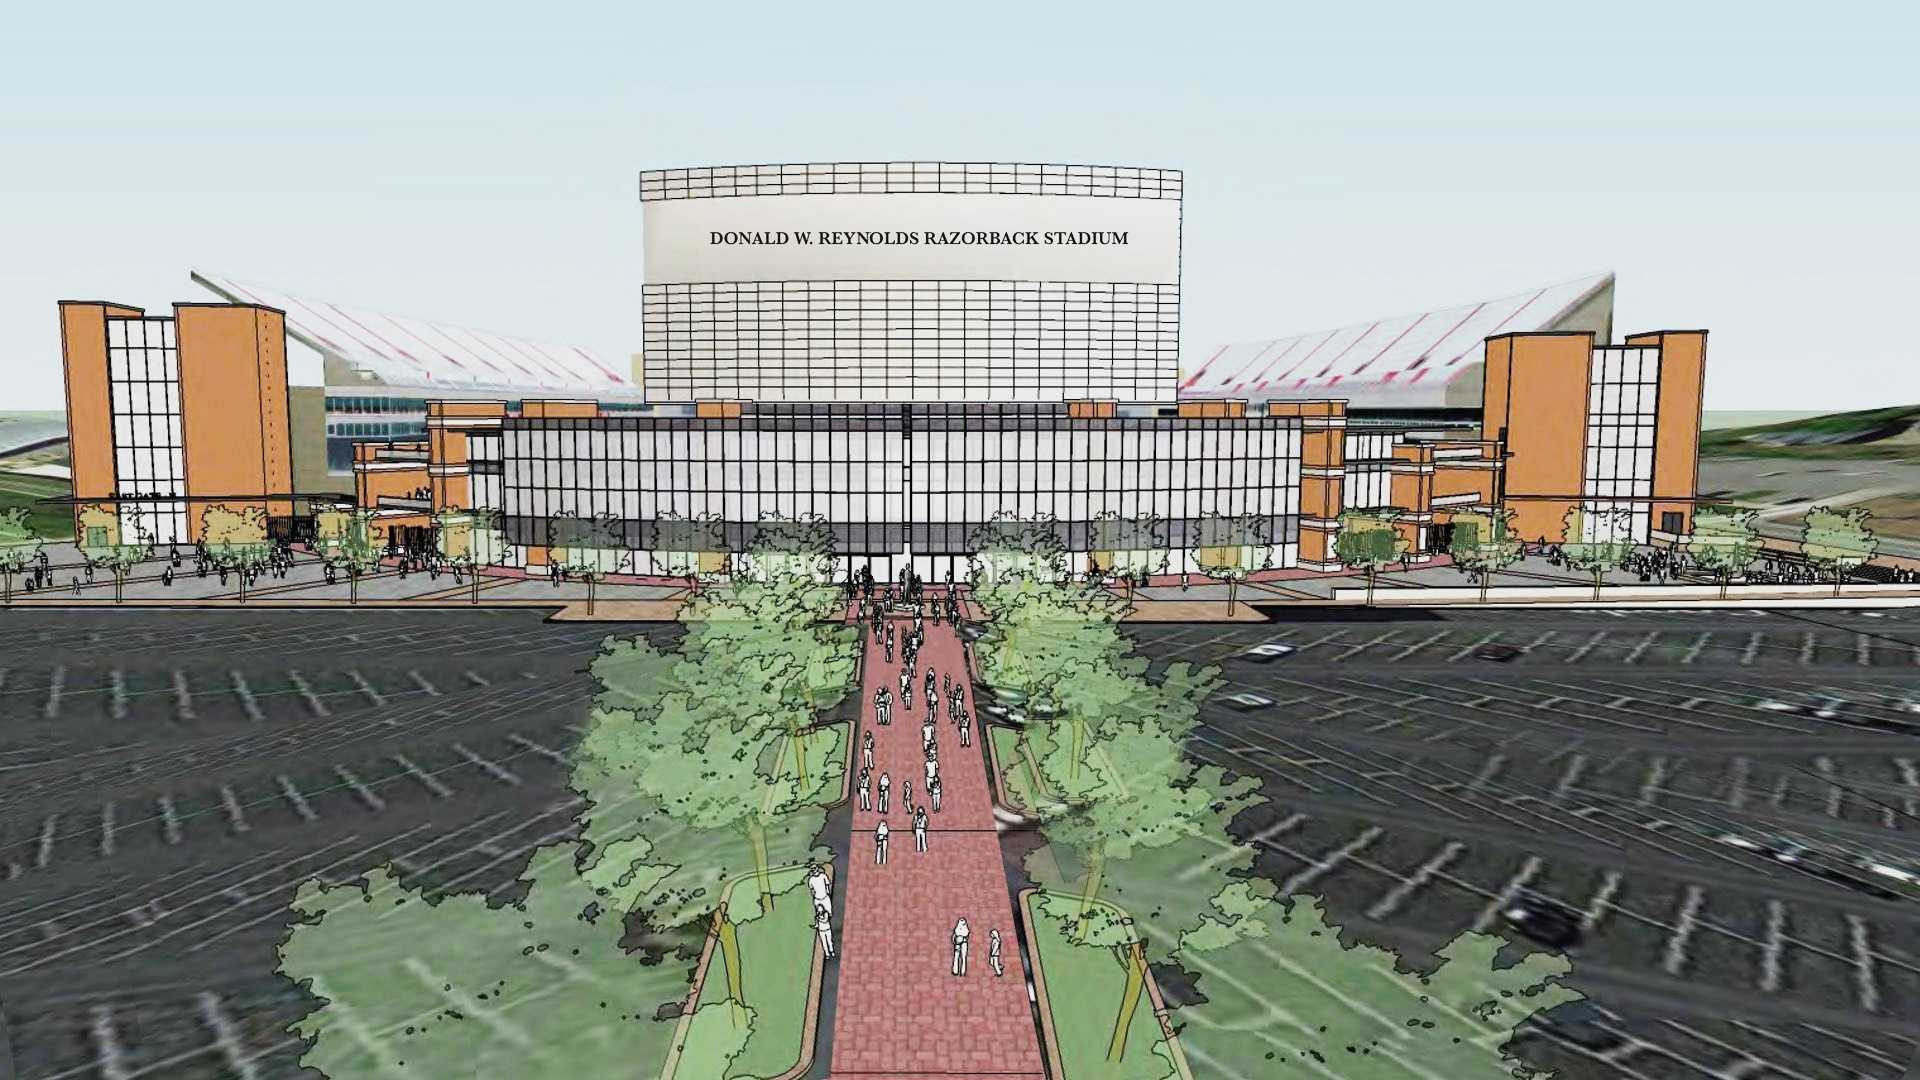 A rendering of what the north end of Donald W. Reynolds Razorback stadium will look like with proposed upgrades.